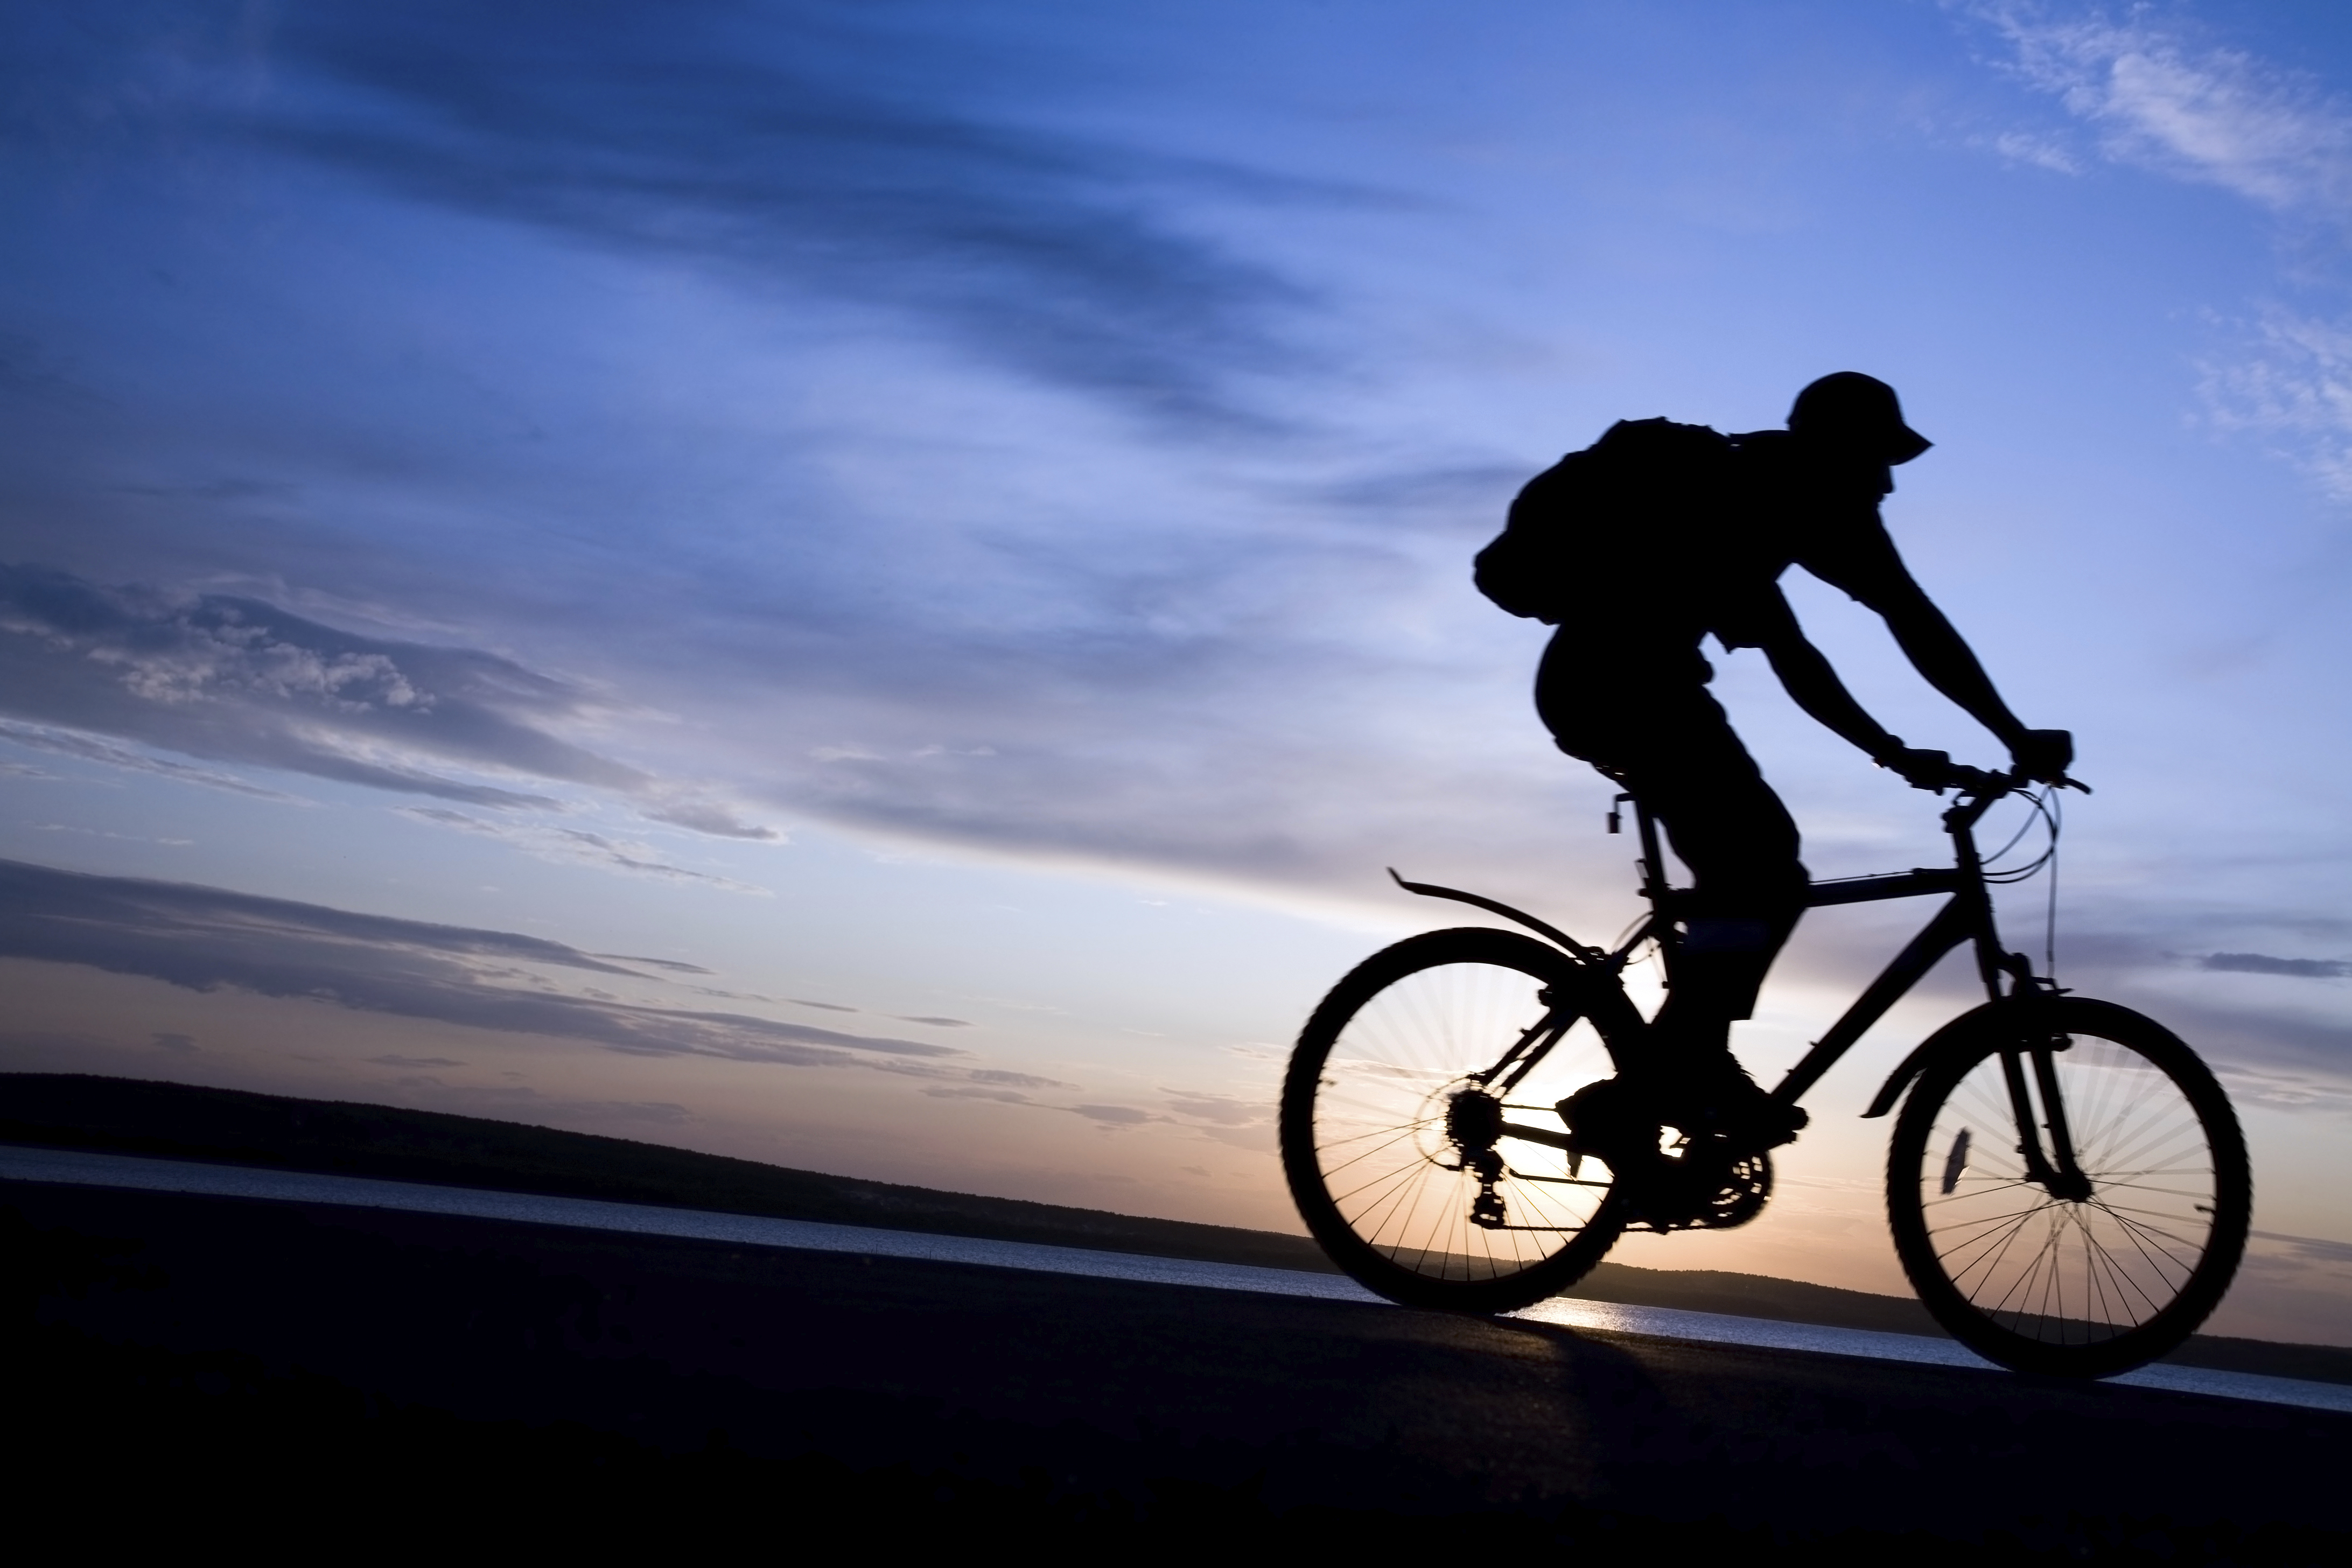 Bike Ride Wallpapers High Quality